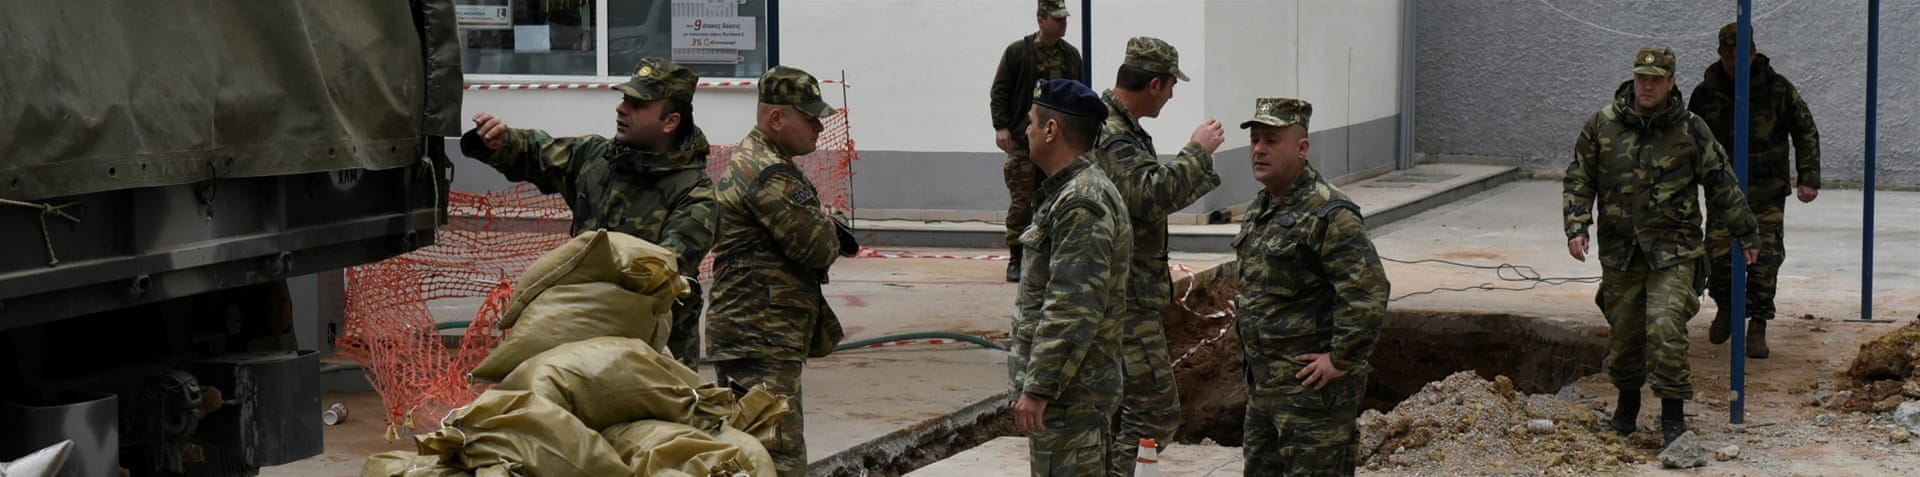 The 250kg bomb was discovered about 5 metres below ground [Giannis Papanikos/AP]